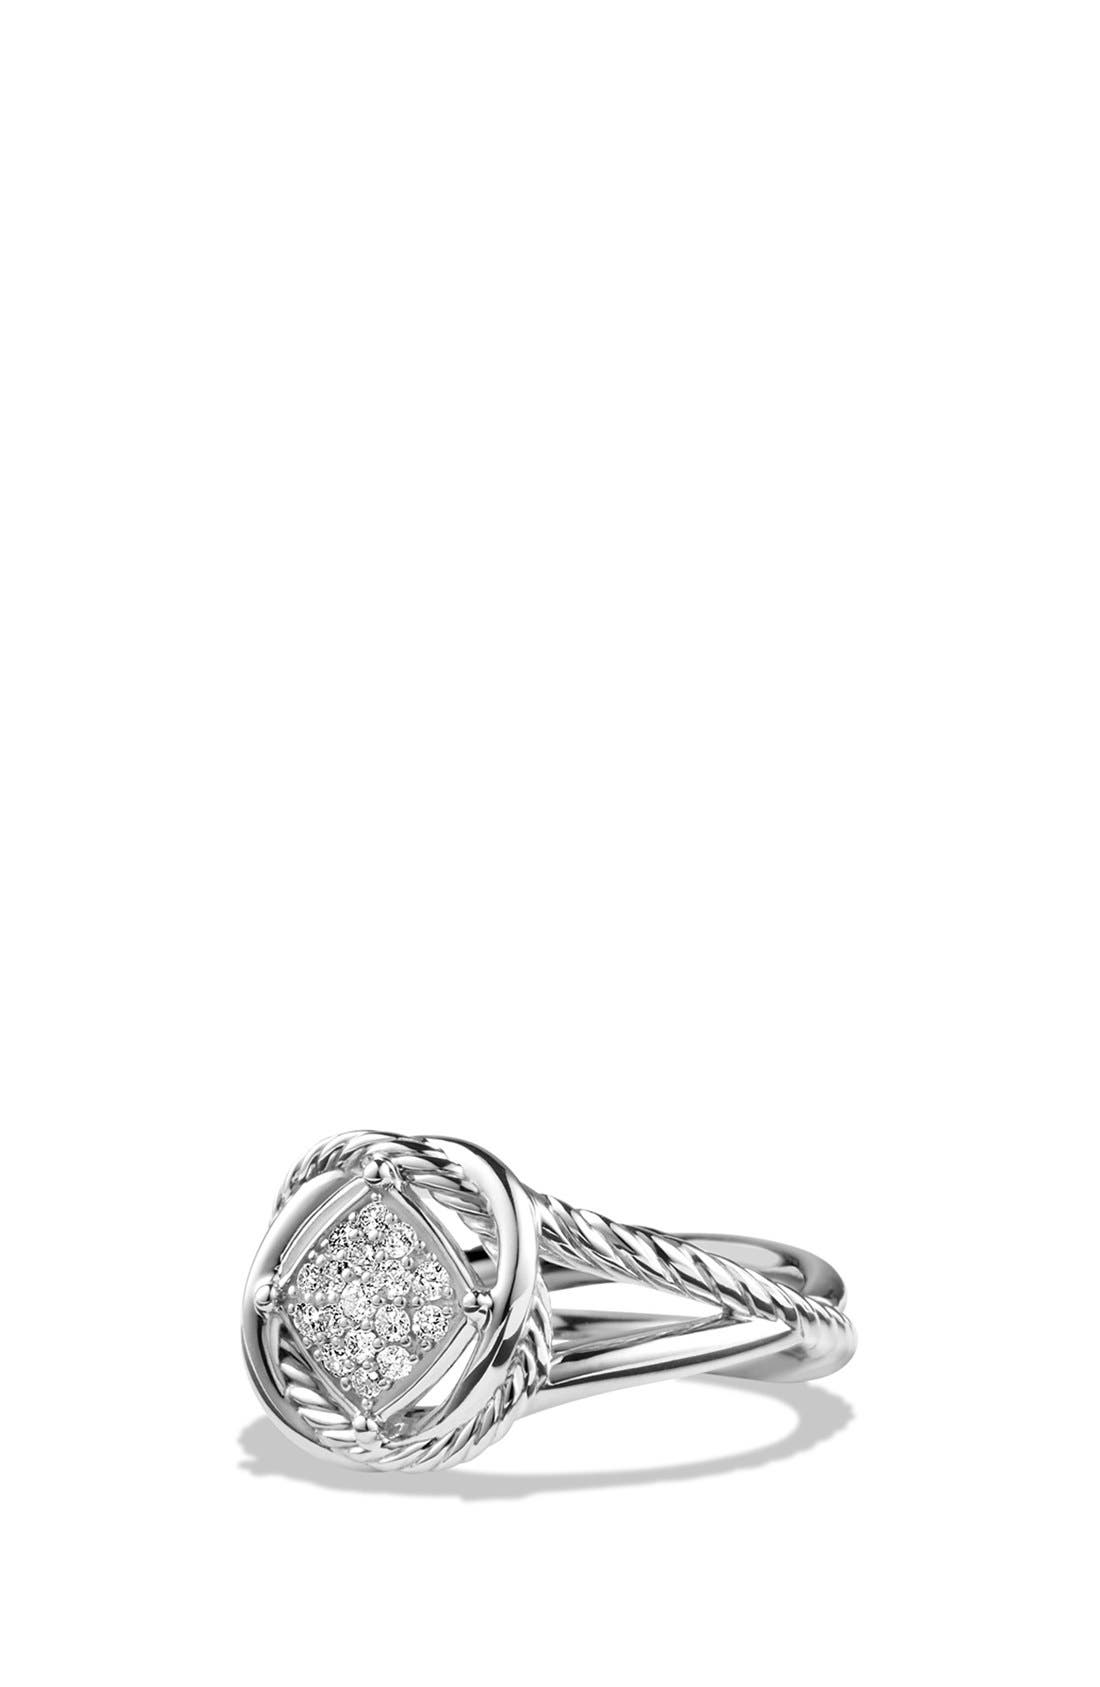 Main Image - David Yurman 'Infinity' Ring with Diamonds